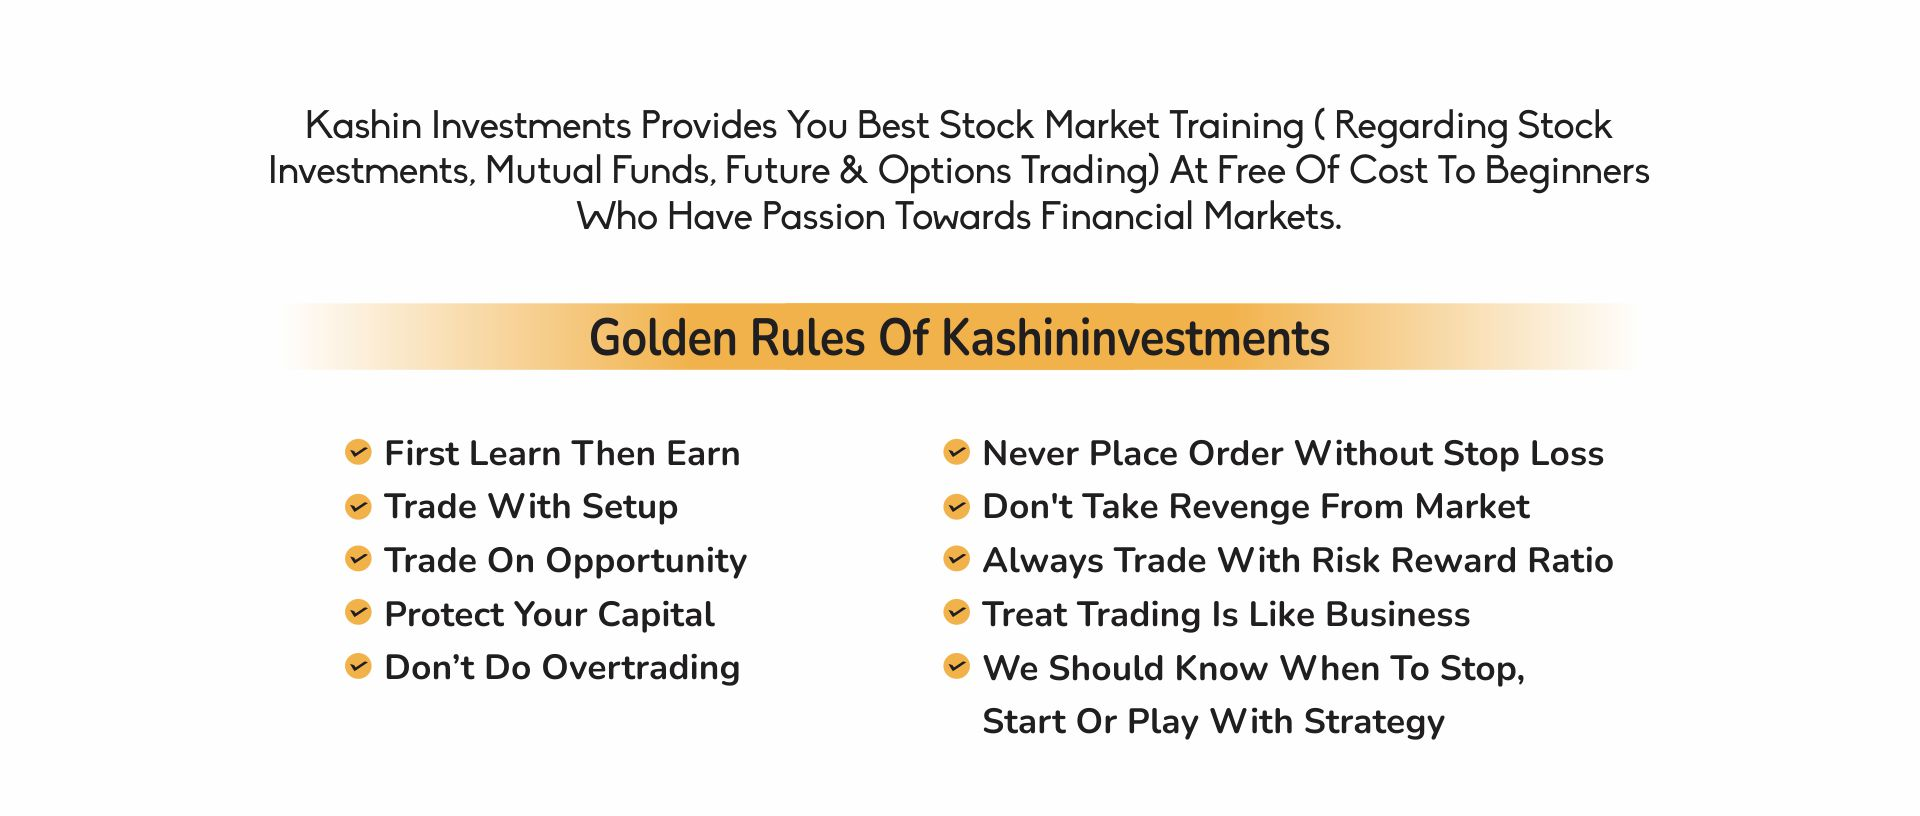 Kashi In Investment